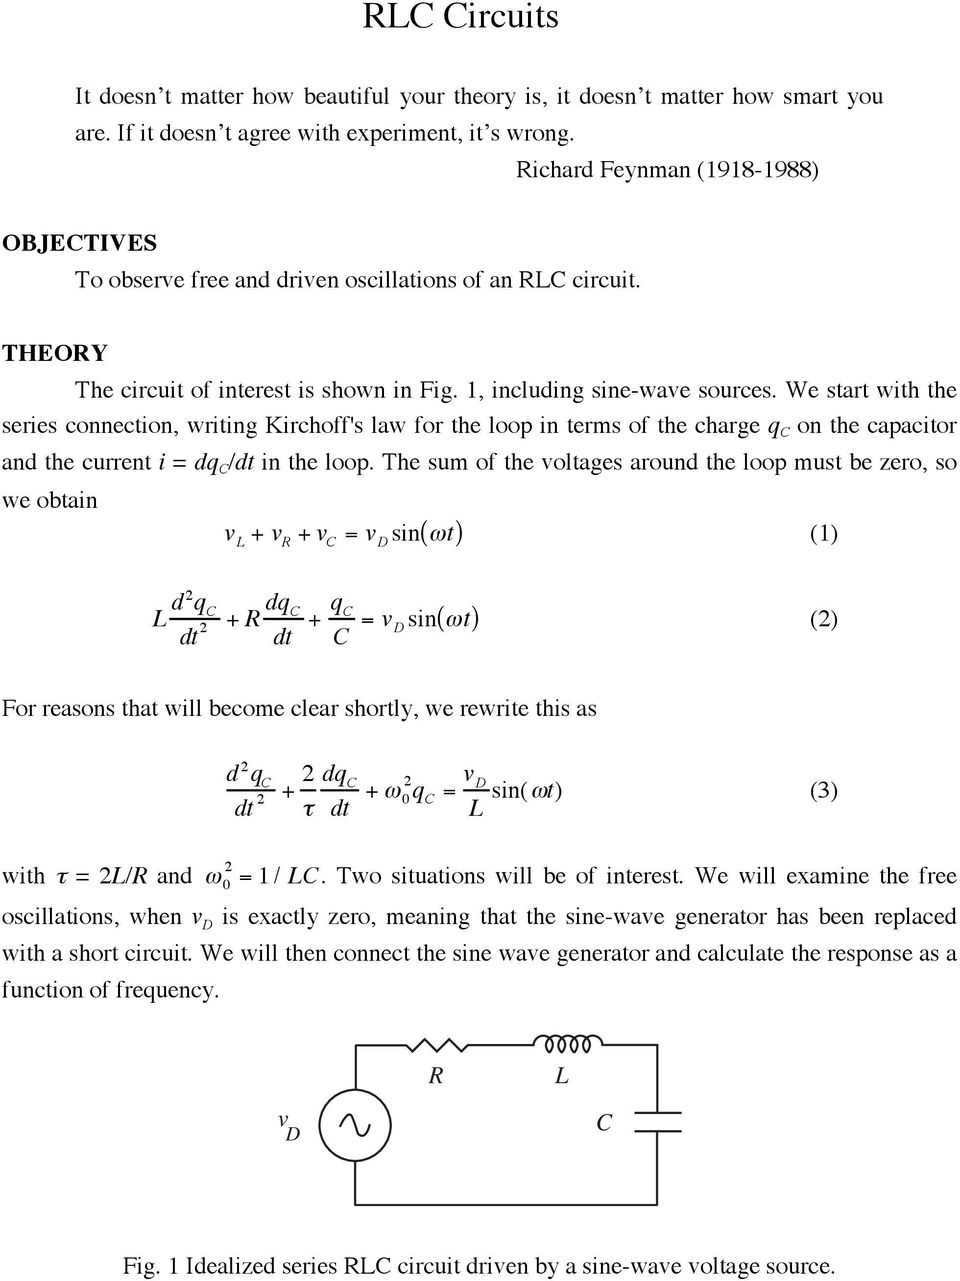 Rlc Circuits Objectives To Observe Free And Driven Oscillations Of Currents In Rc Rl With Increasing Frequency We Start The Series Connection Writing Kirchoffs Law For Loop Terms